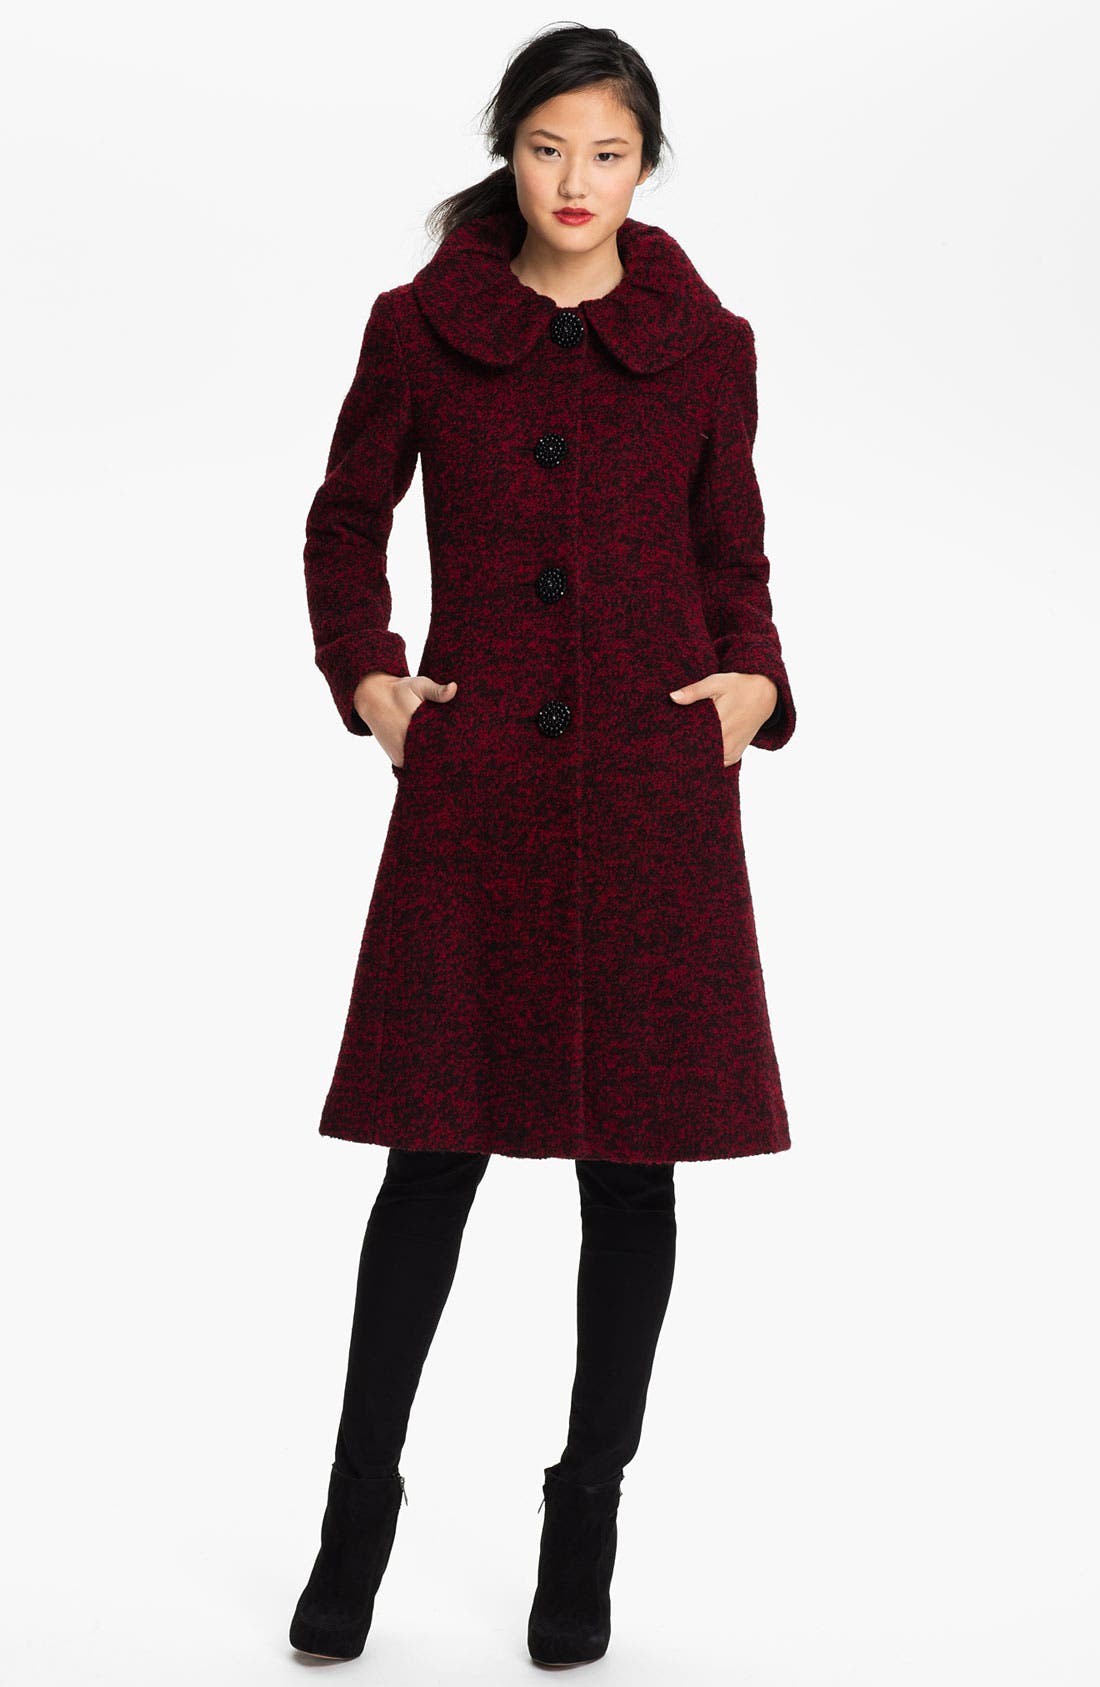 Alternate Image 1 Selected - Ivanka Trump Single Breasted Tweed Coat (Online Exclusive)